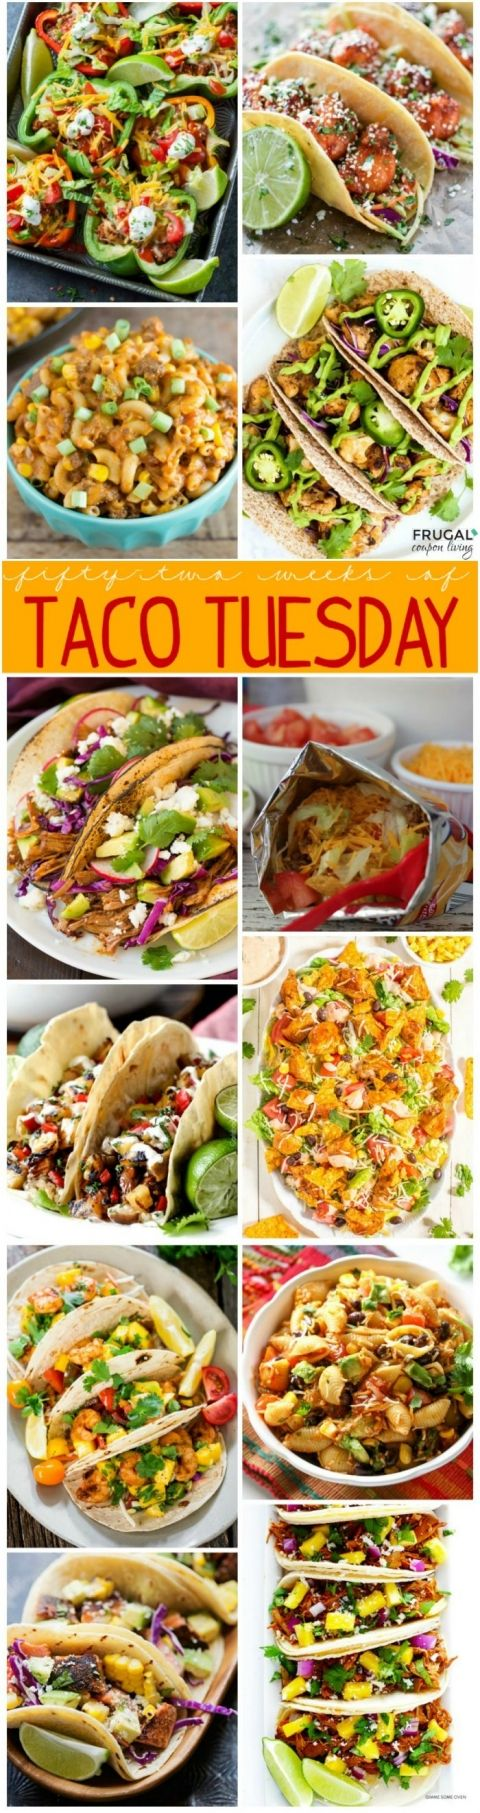 Taco-Tuesday-Recipes-Frugal-Coupon-Living-long